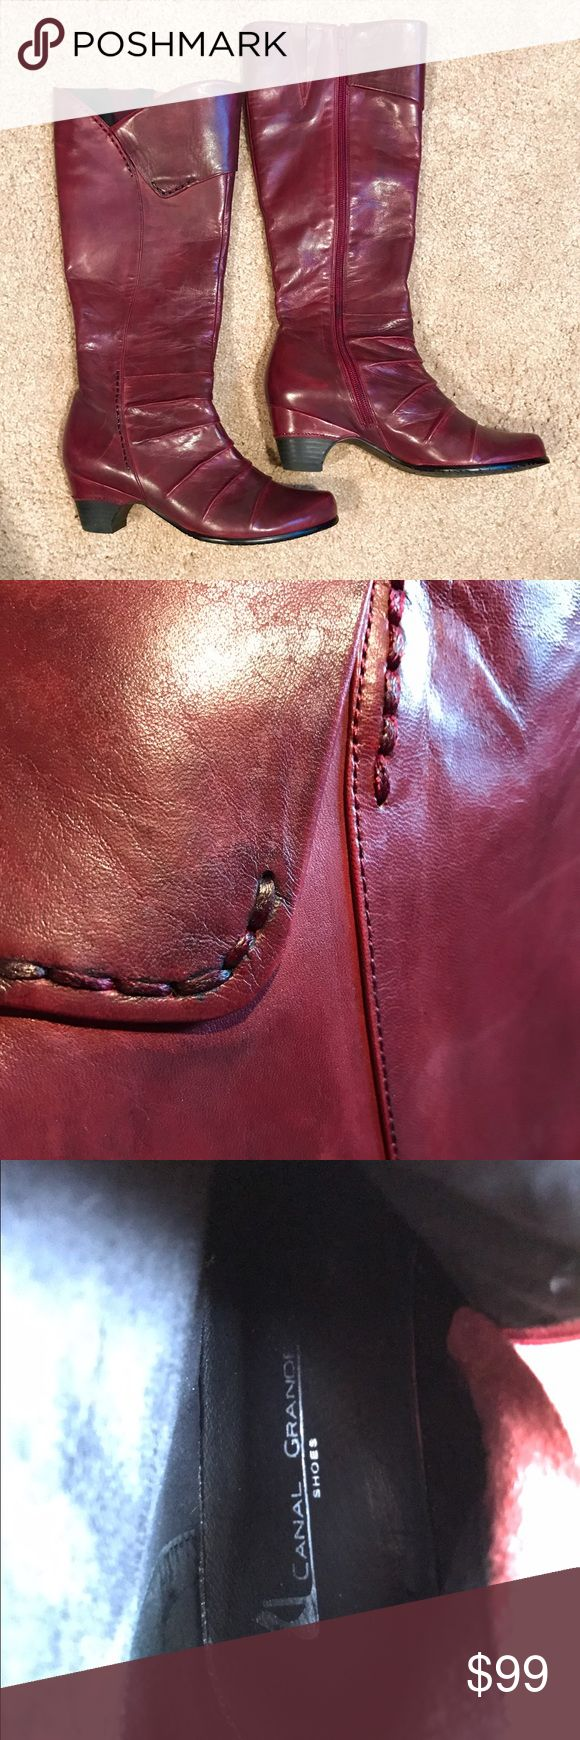 "Red Leather Boots Deep red leather knee high boots. Barely worn and in great shape. 2"" heel. Super soft glove leather (I bet they were made in Italy, but can't say for sure). Canal Grande is the brand and Cresta is the name. Euro size 37, US size 7. Shoes Heeled Boots"